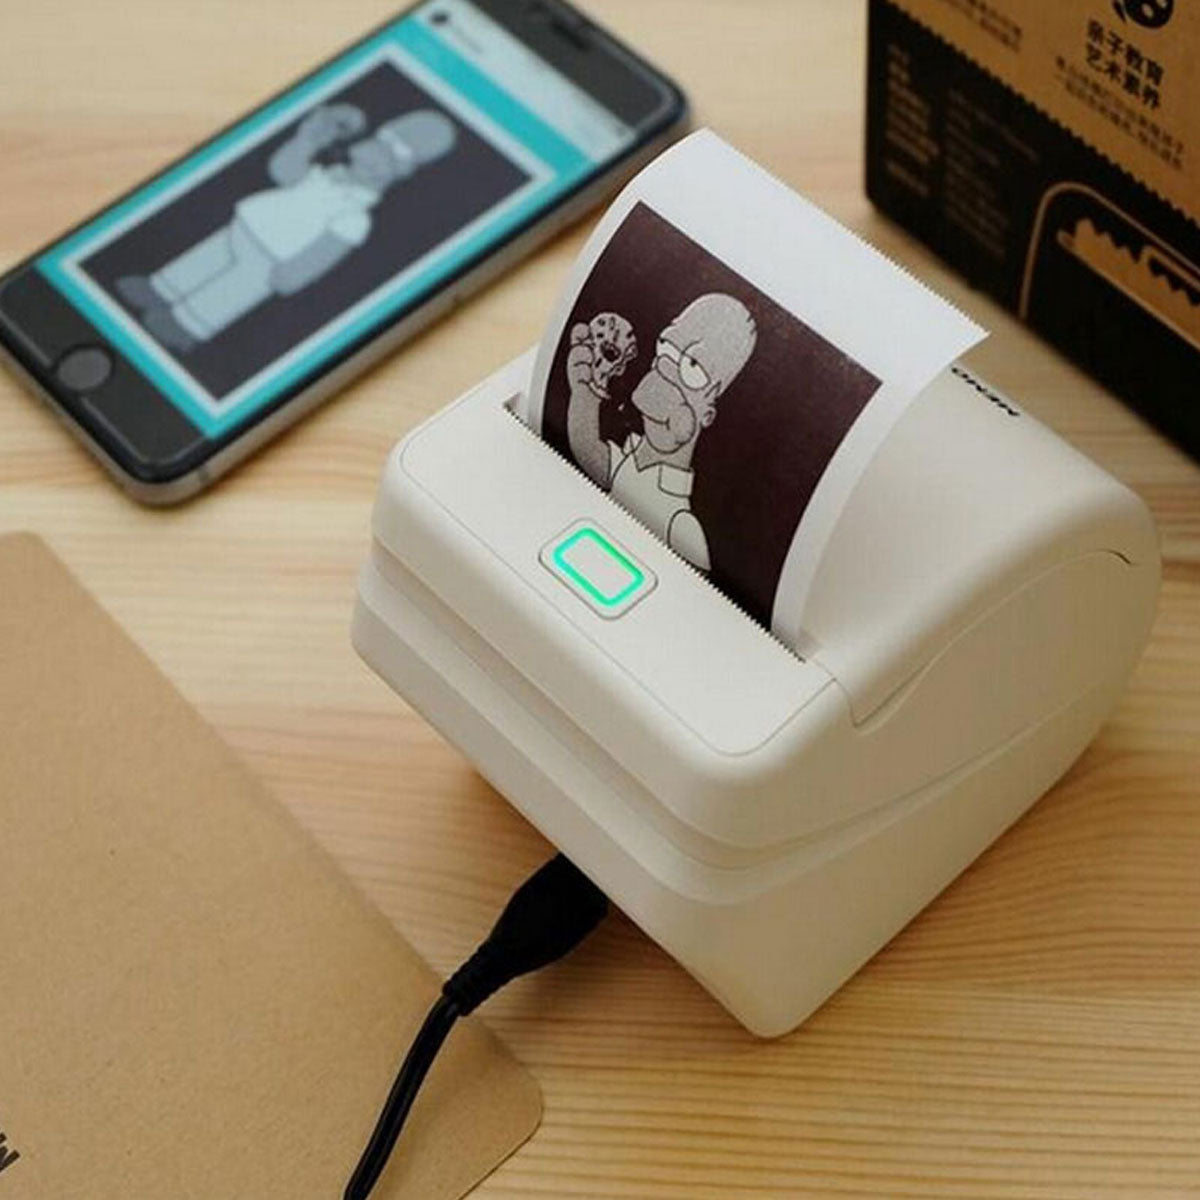 Phone Photo Printer